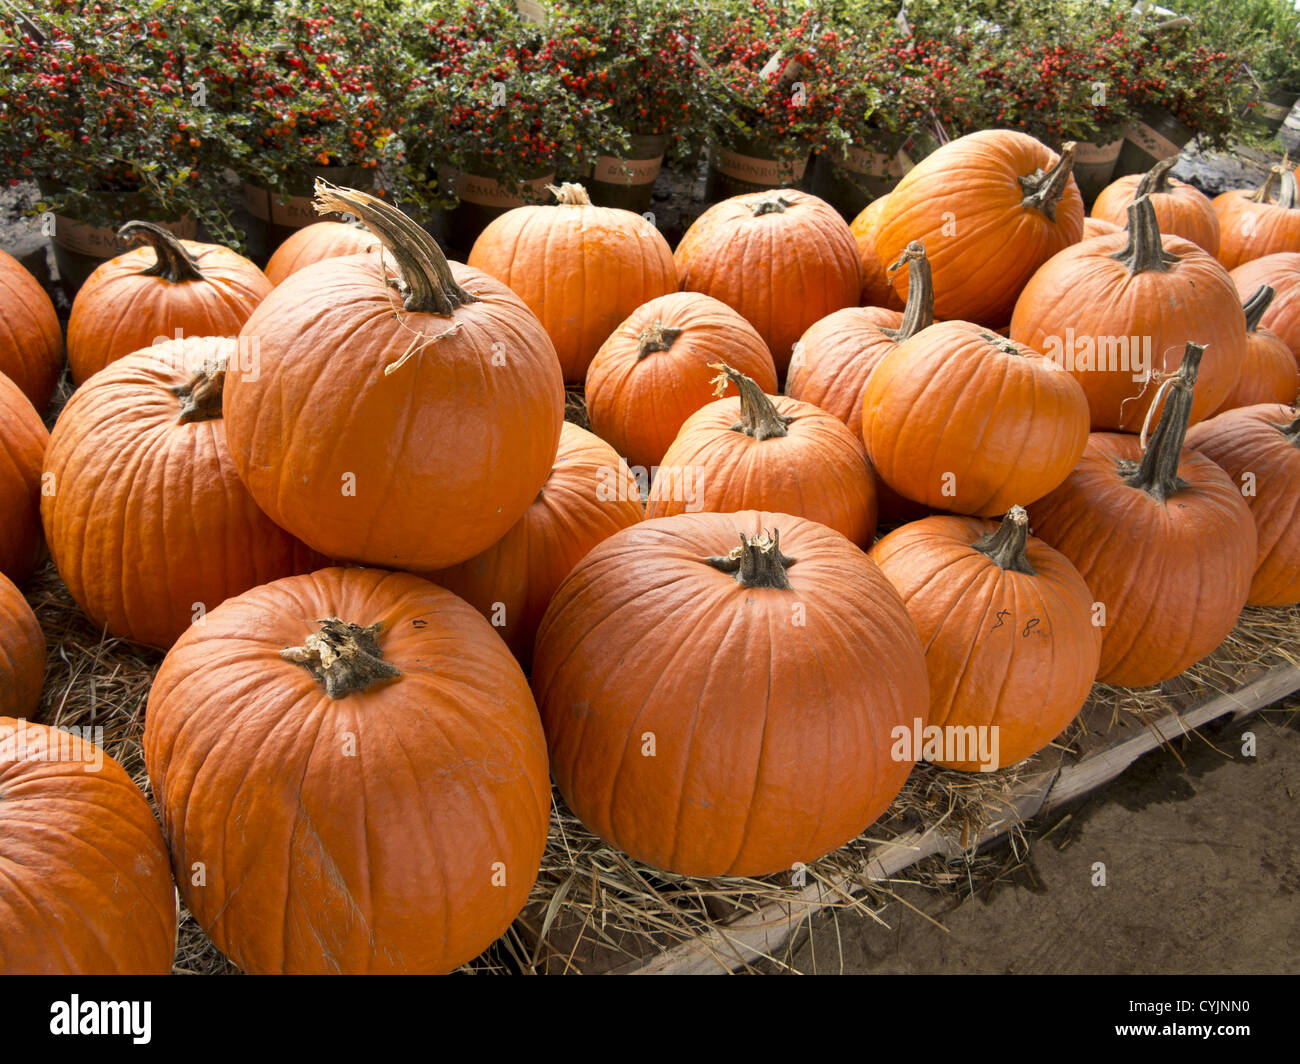 Pumpkins for sale at a garden center in Brooklyn, NY. - Stock Image